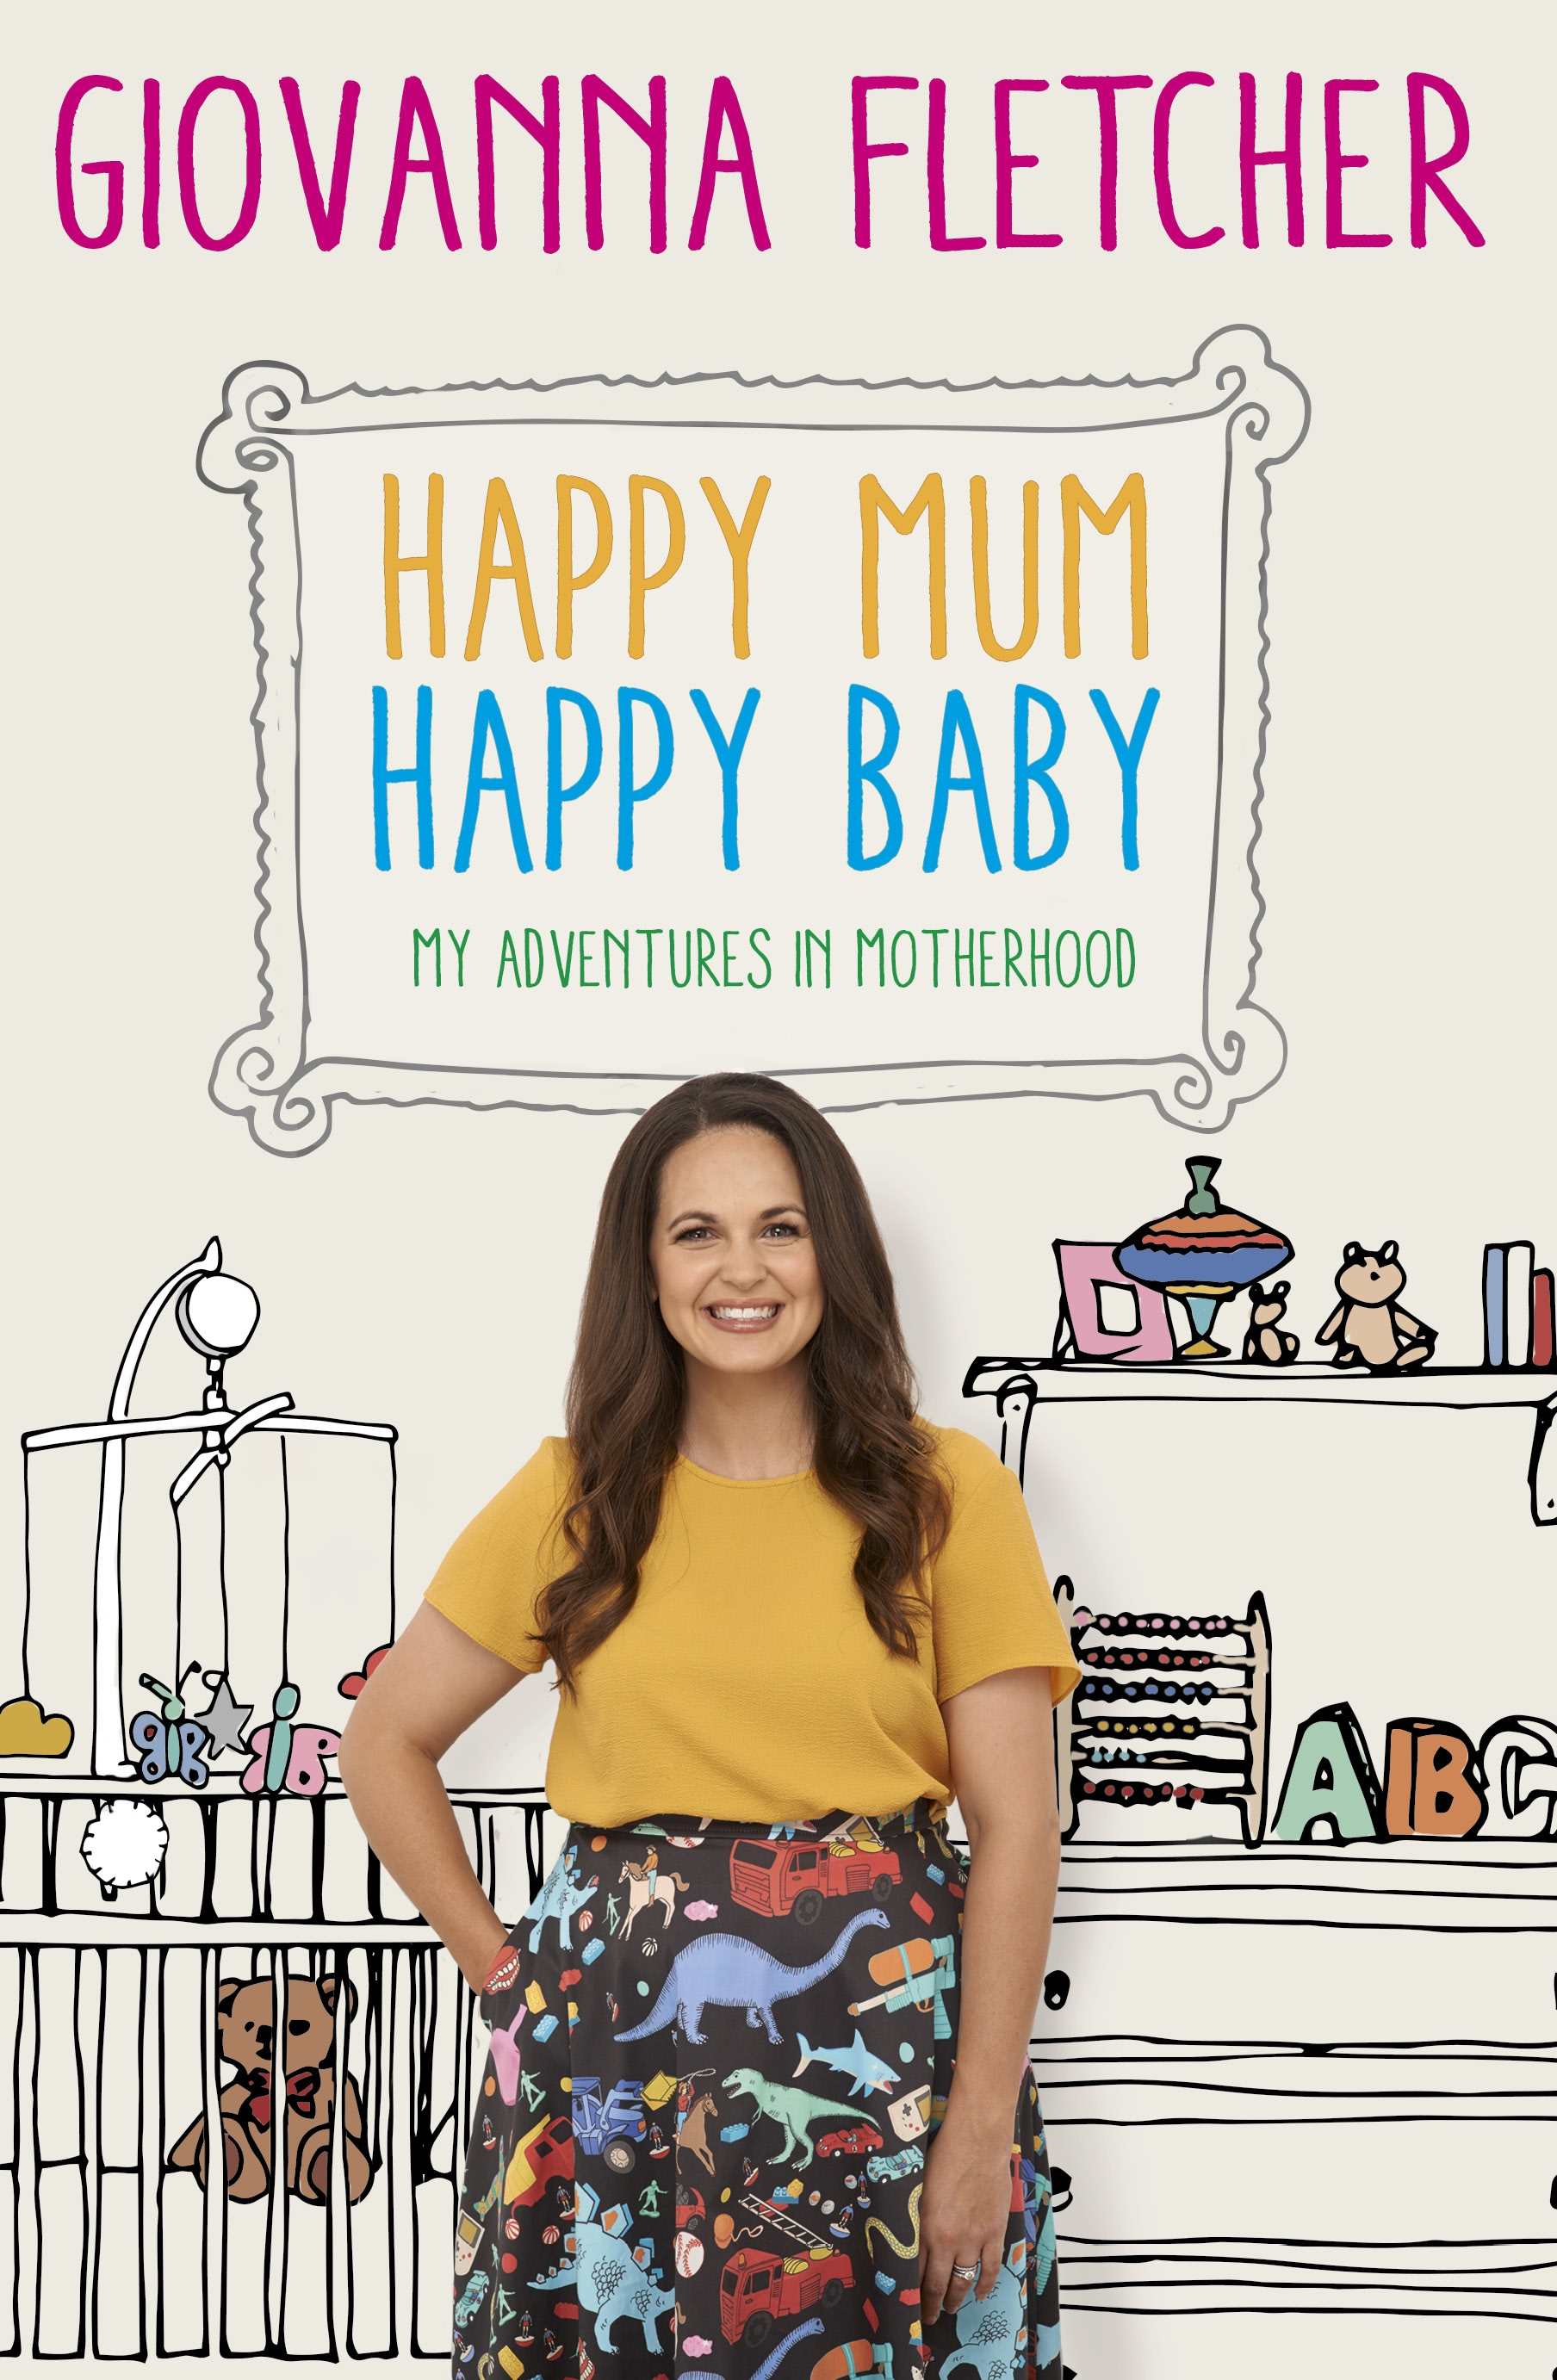 Giovanna Fletcher - Happy Mum, Happy Baby